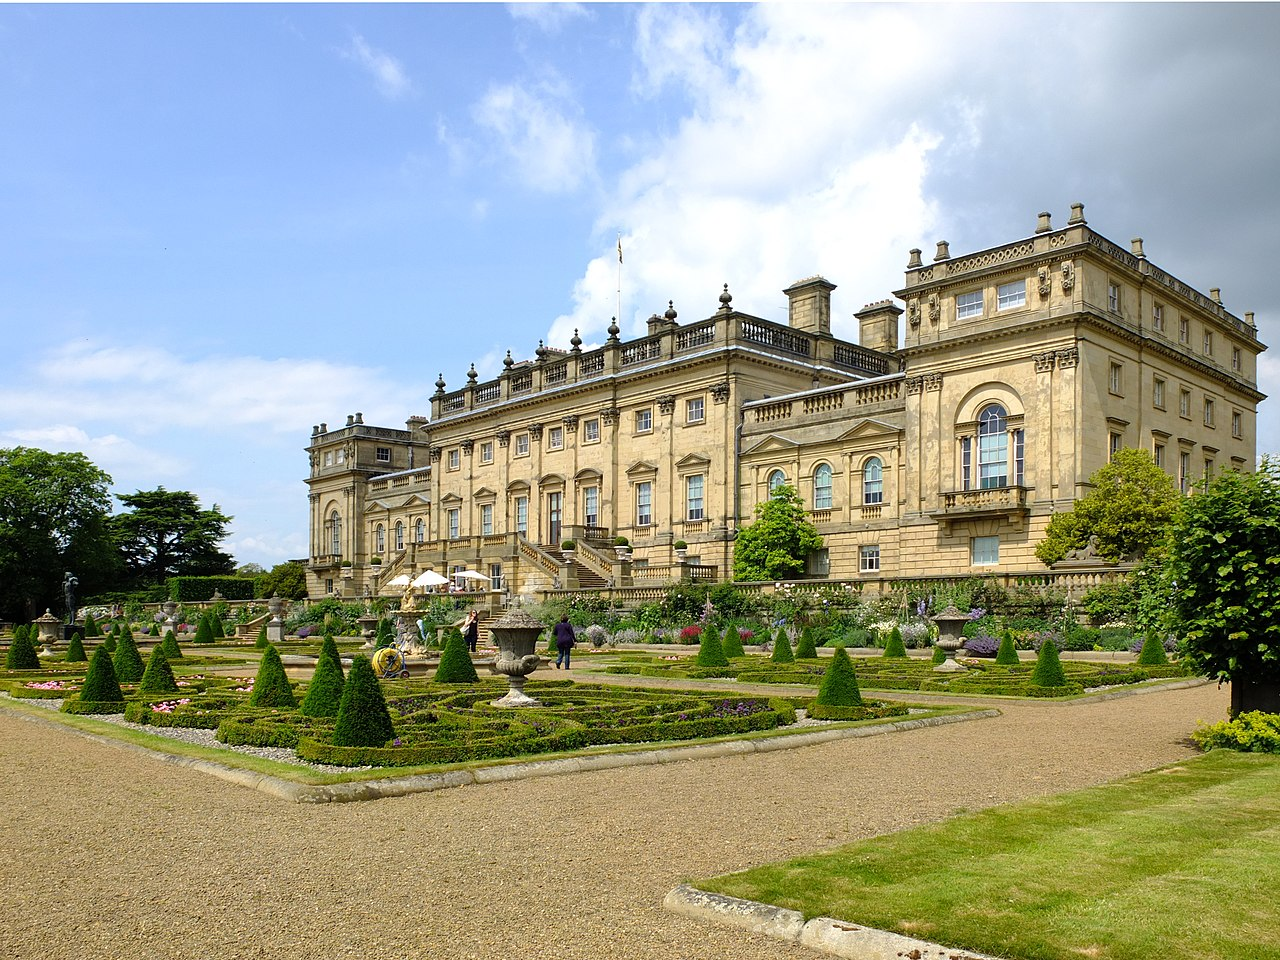 File:Harewood House From The Terrace Garden.JPG